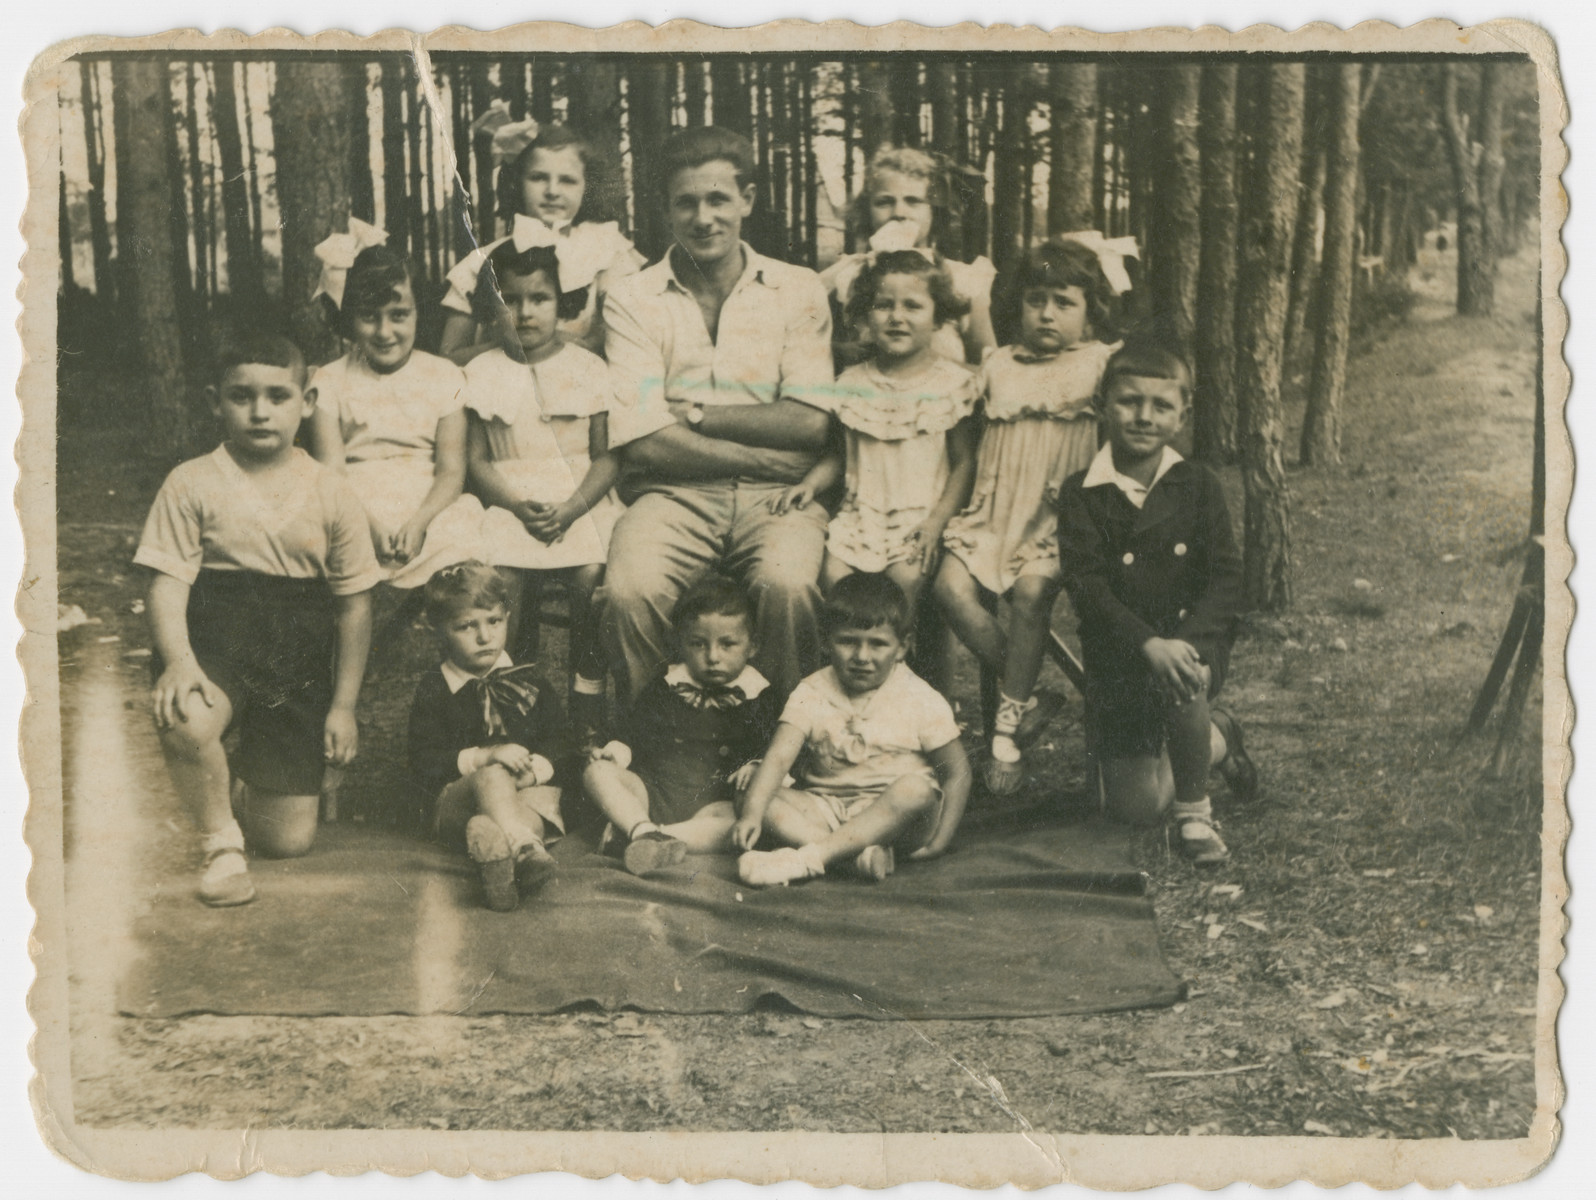 Yehuda Bielski poses with a large group of young children in the woods near Nowogrodek.